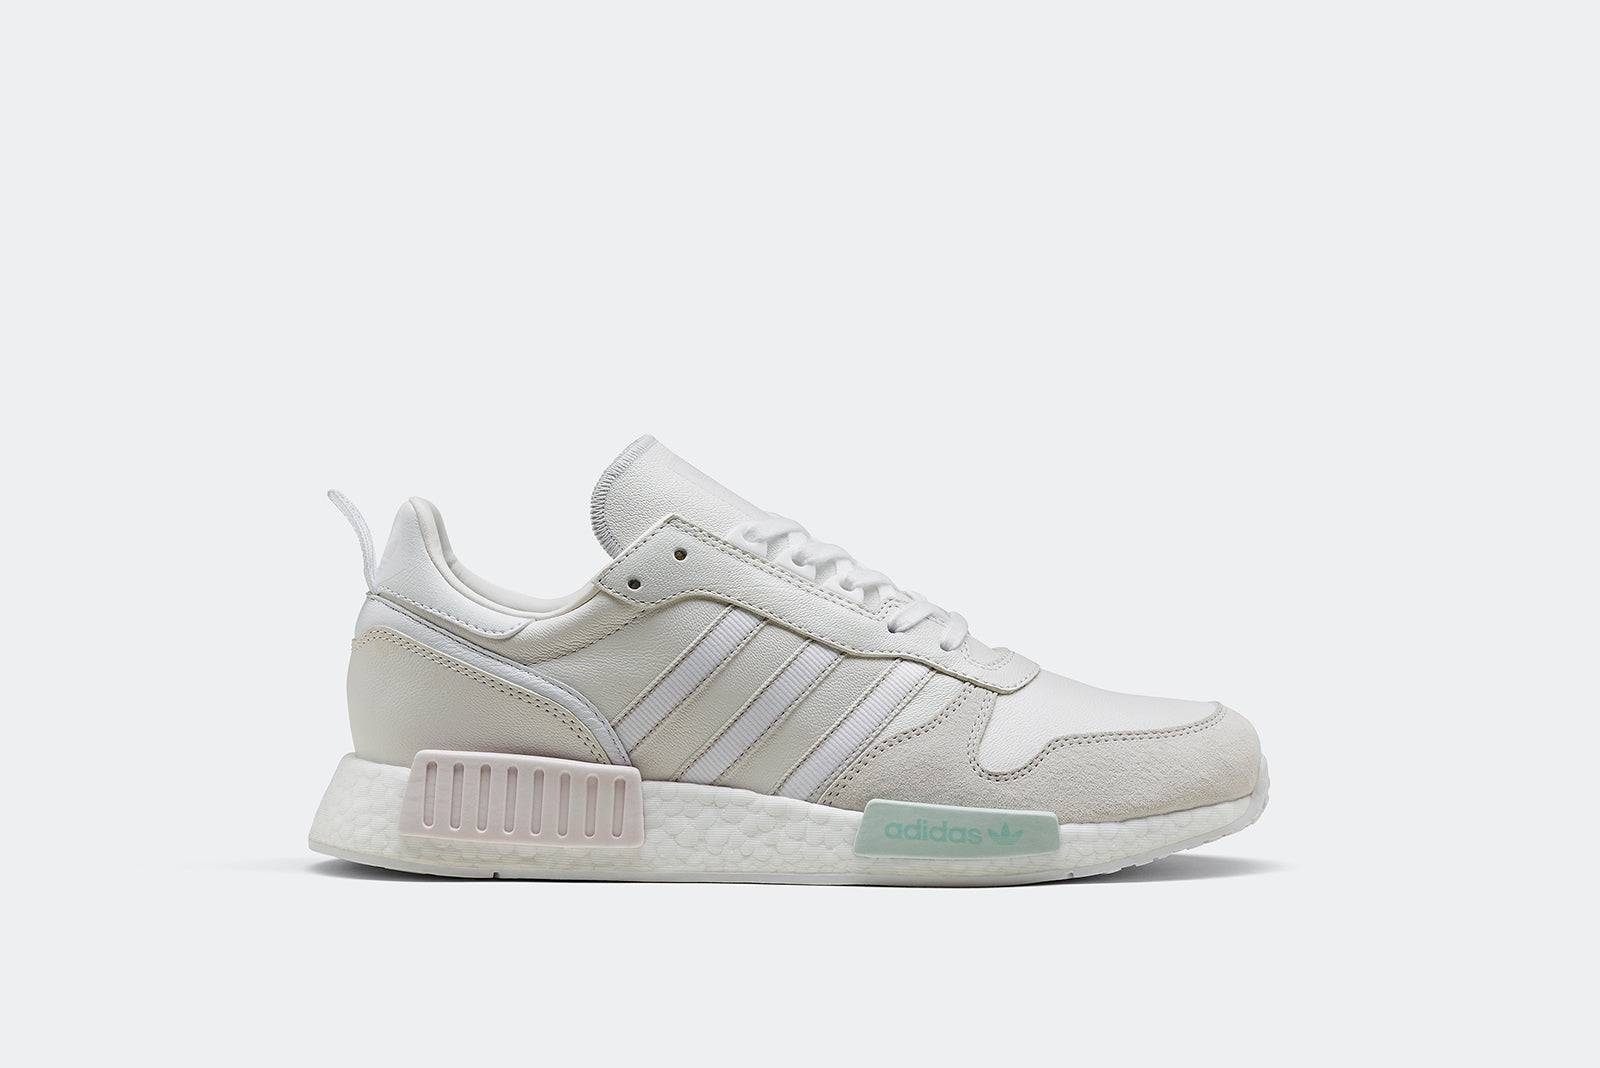 148c1ee3955 adidas Originals Rising Star x R1  Never Made  G28939 CLOWHI FTWWHT GREONE  Price  £119.00. Launch  Sunday 18th of November ONLINE  23 00GMT